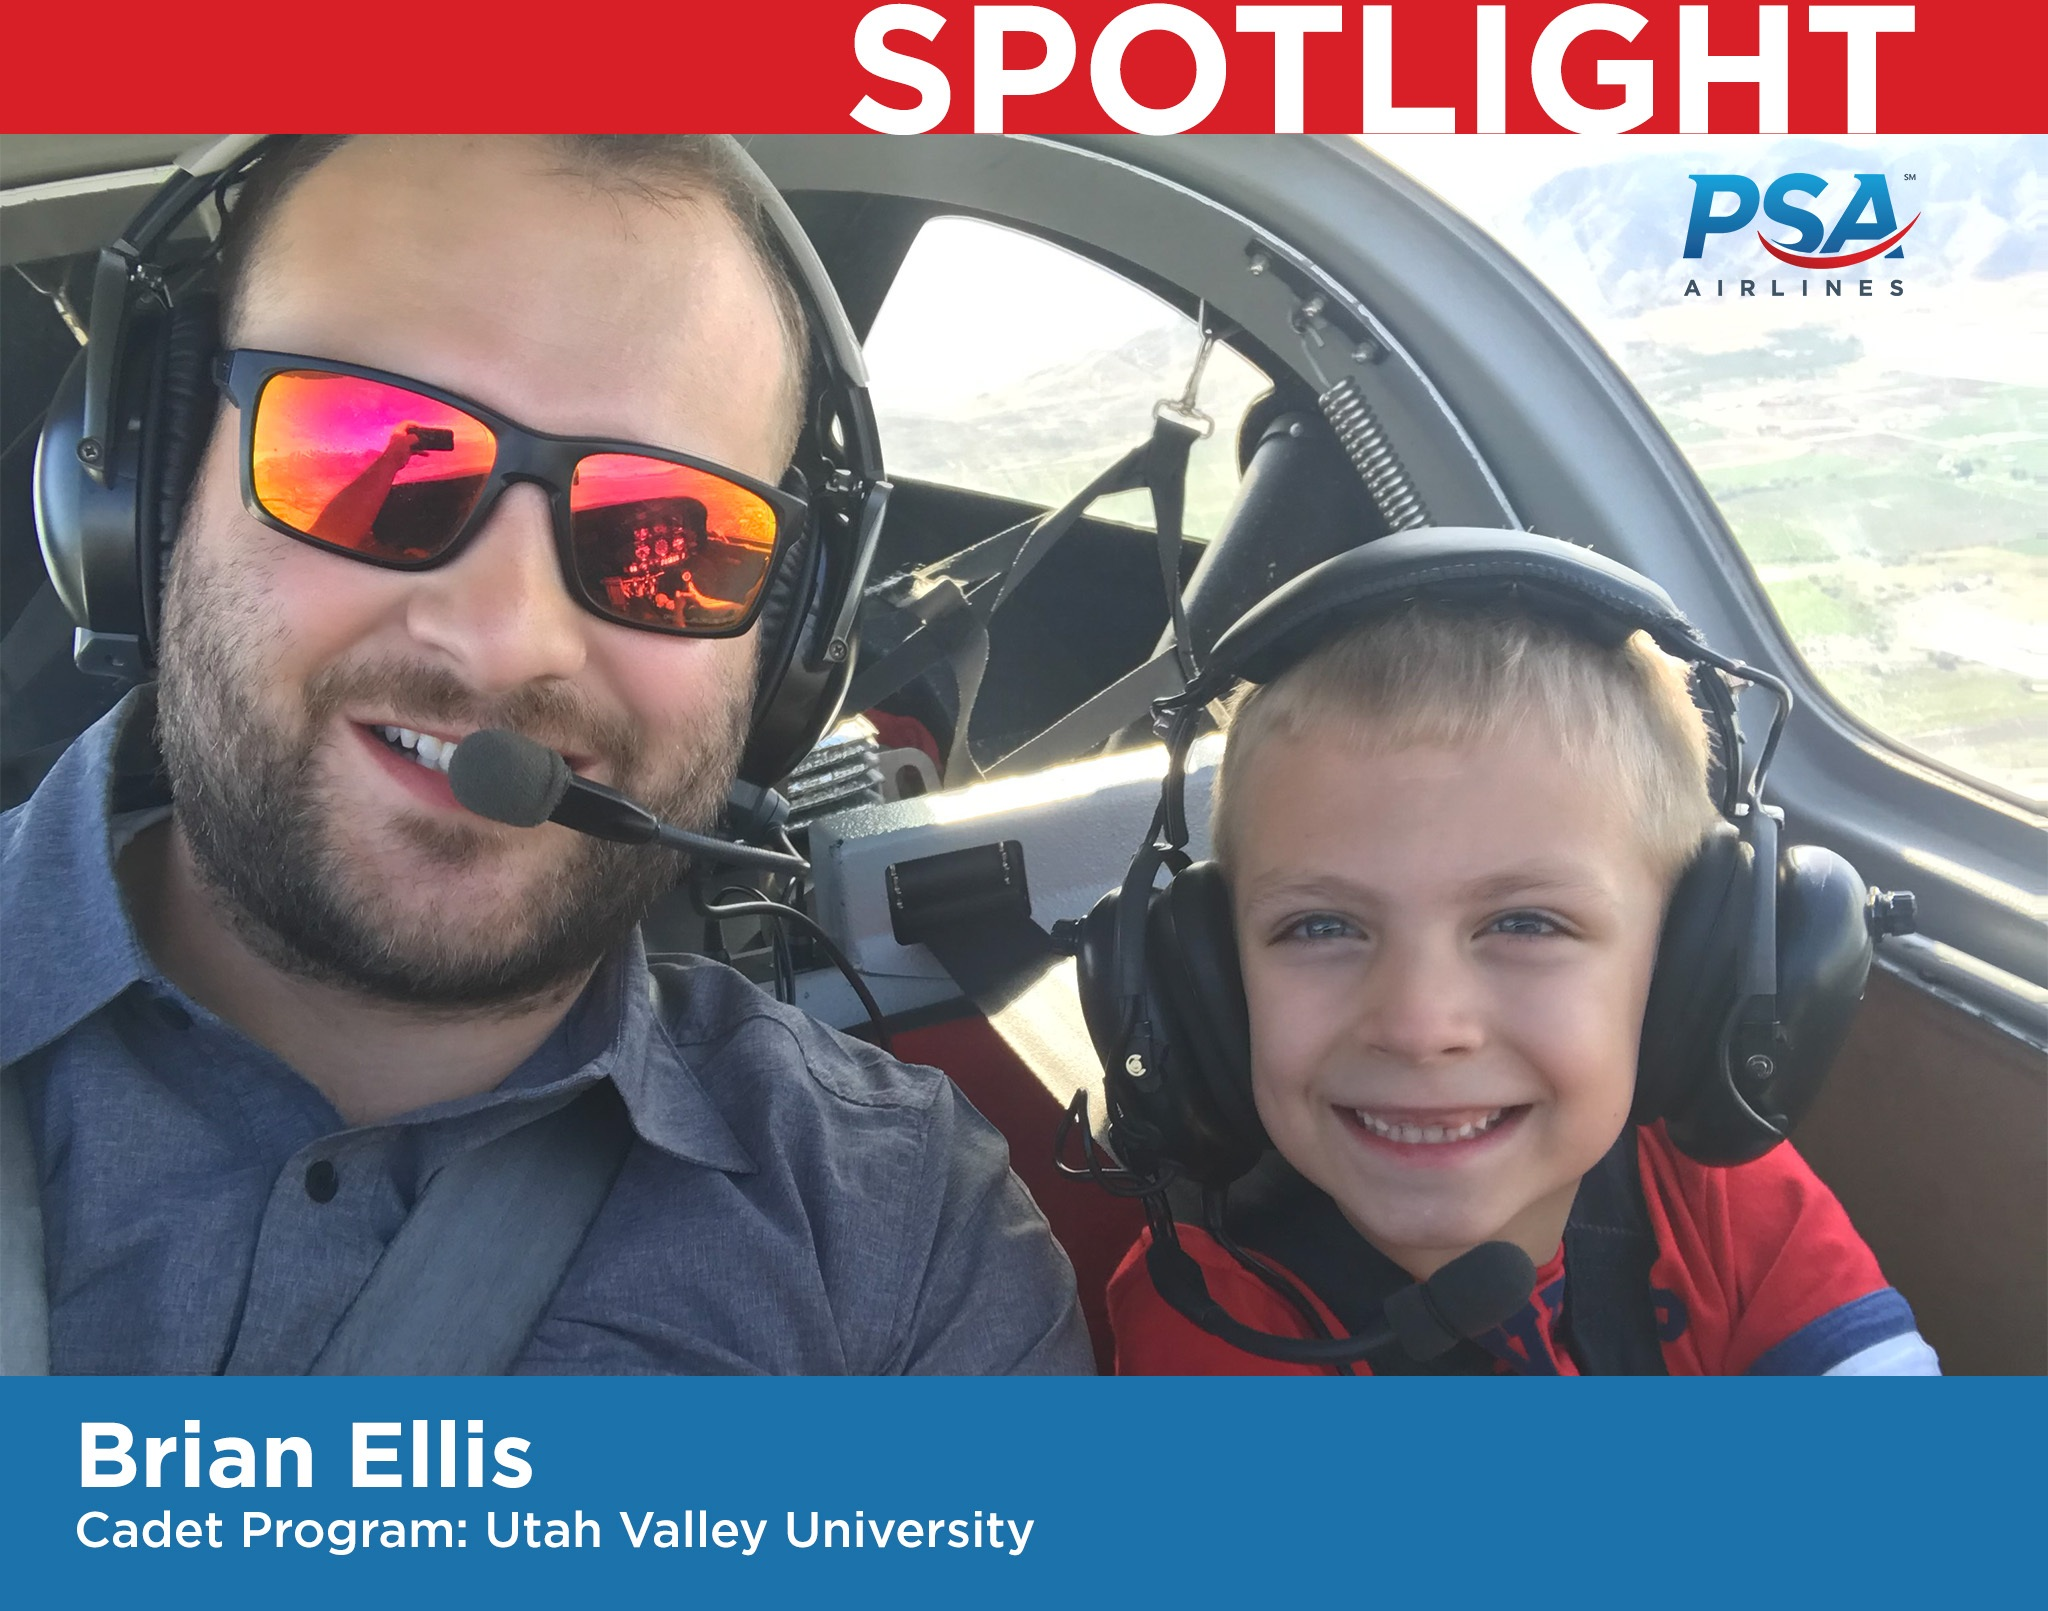 Brian Ellis with son in cockpit of aircraft while flying